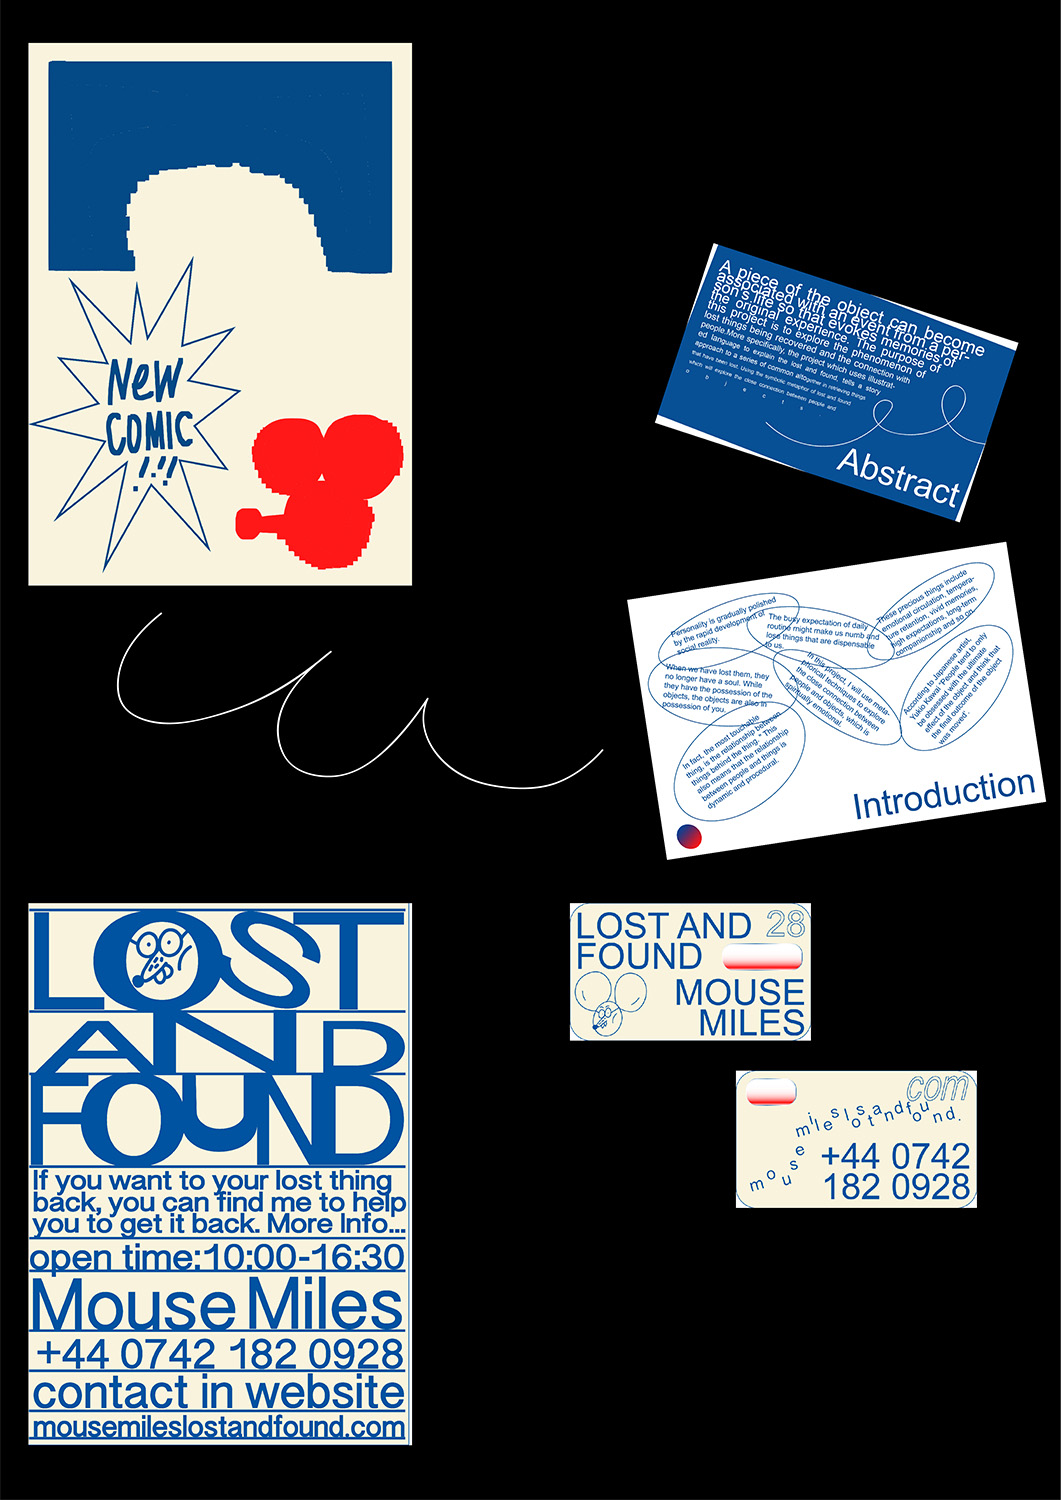 lost and found posters